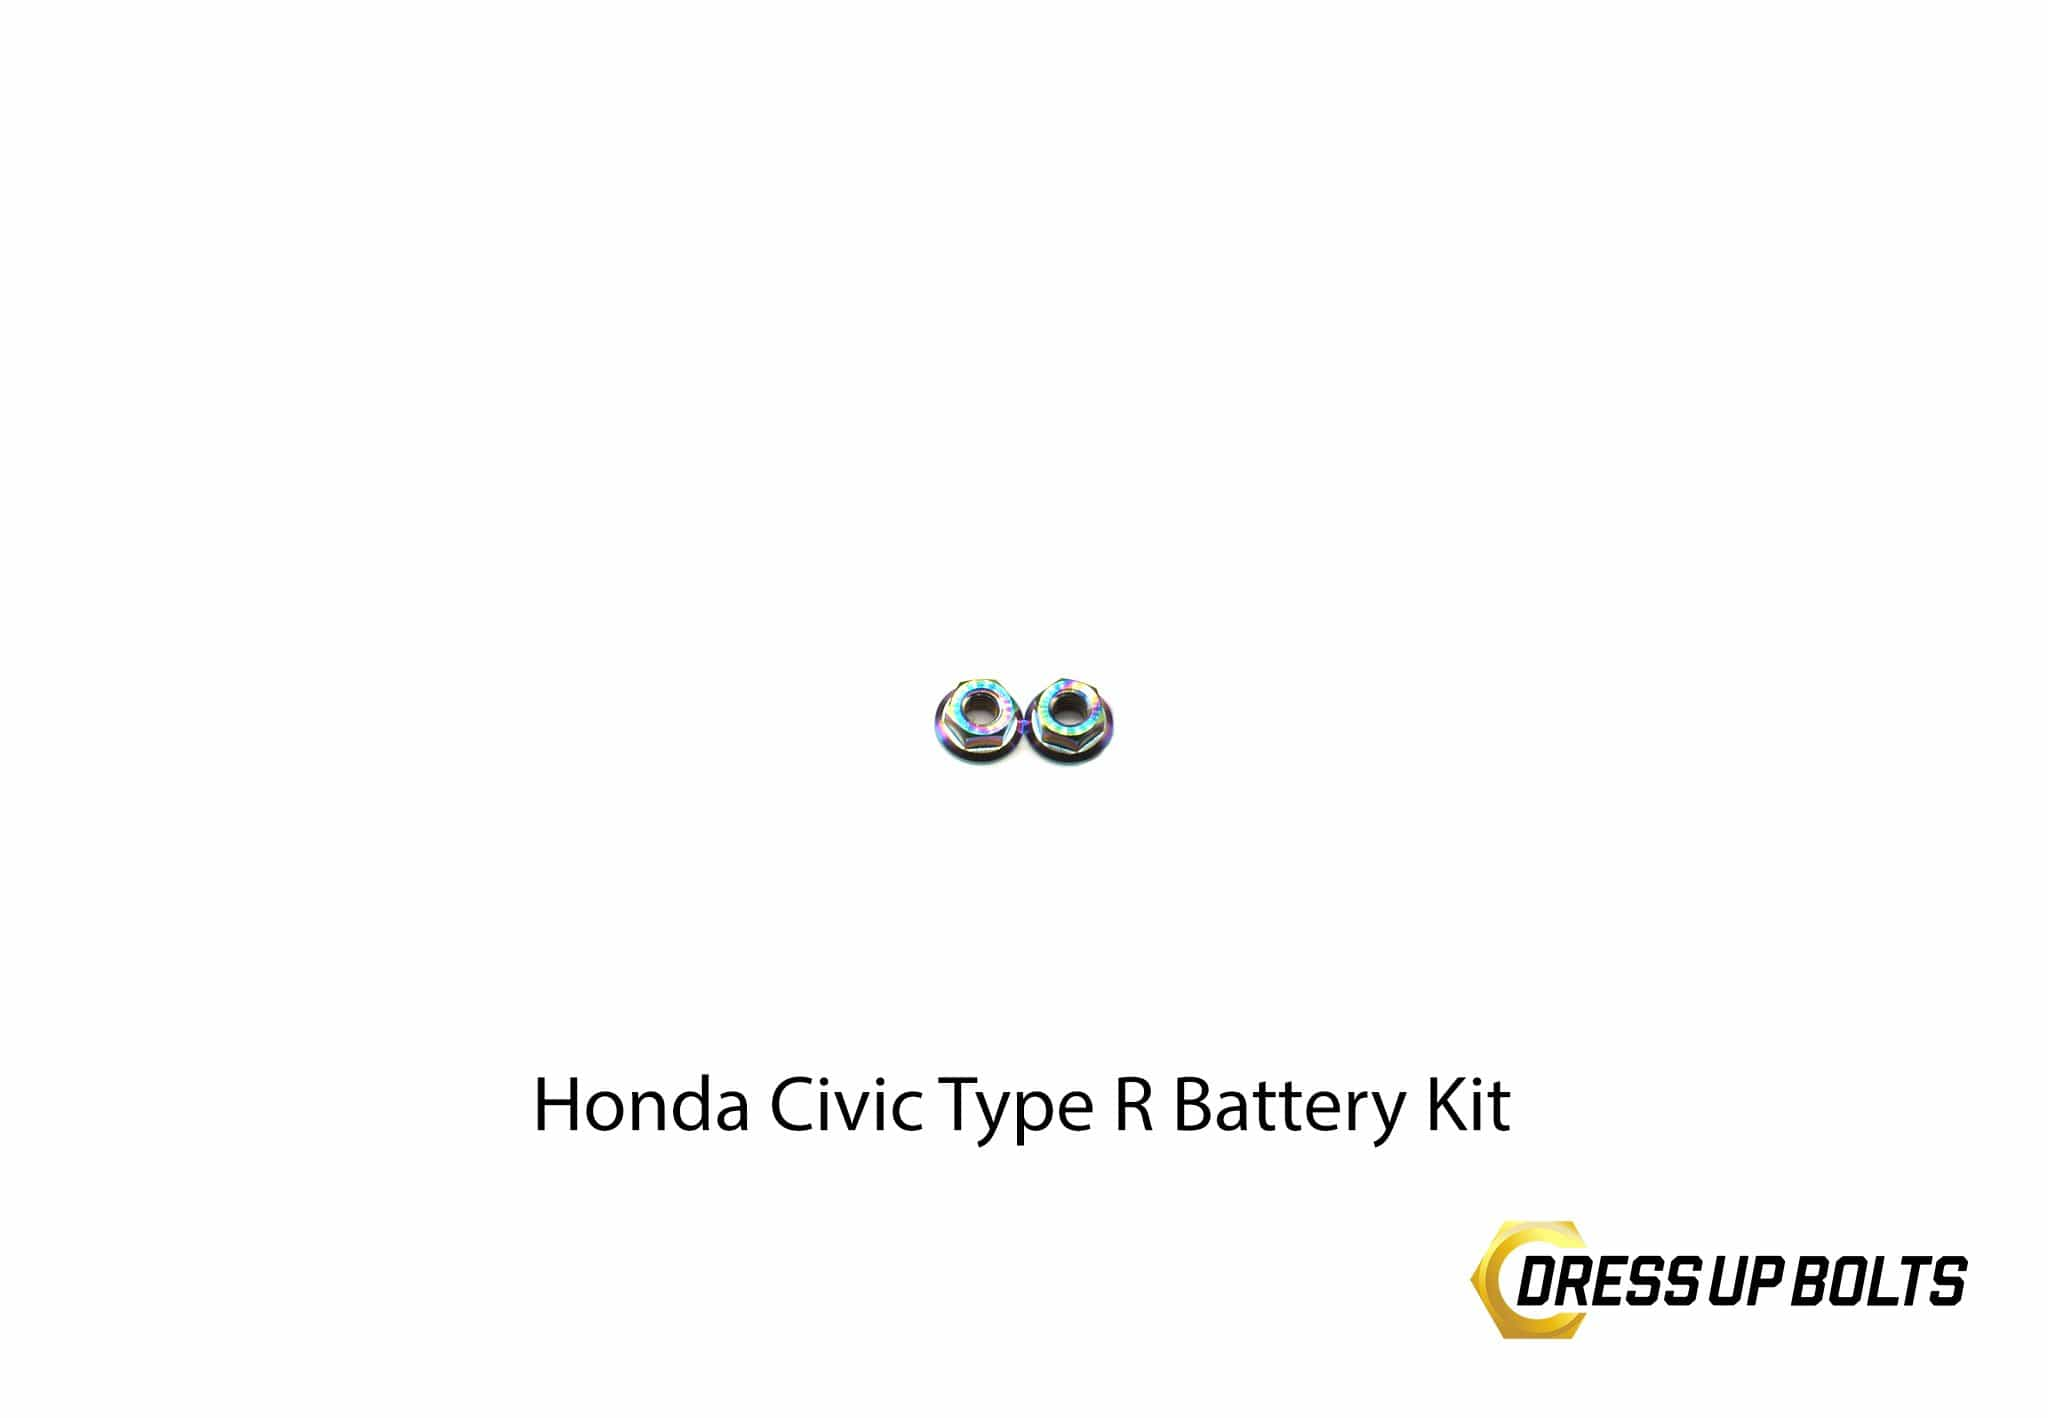 Honda Civic Type R (2017-2019) Titanium Dress Up Bolt Battery Kit - DressUpBolts.com